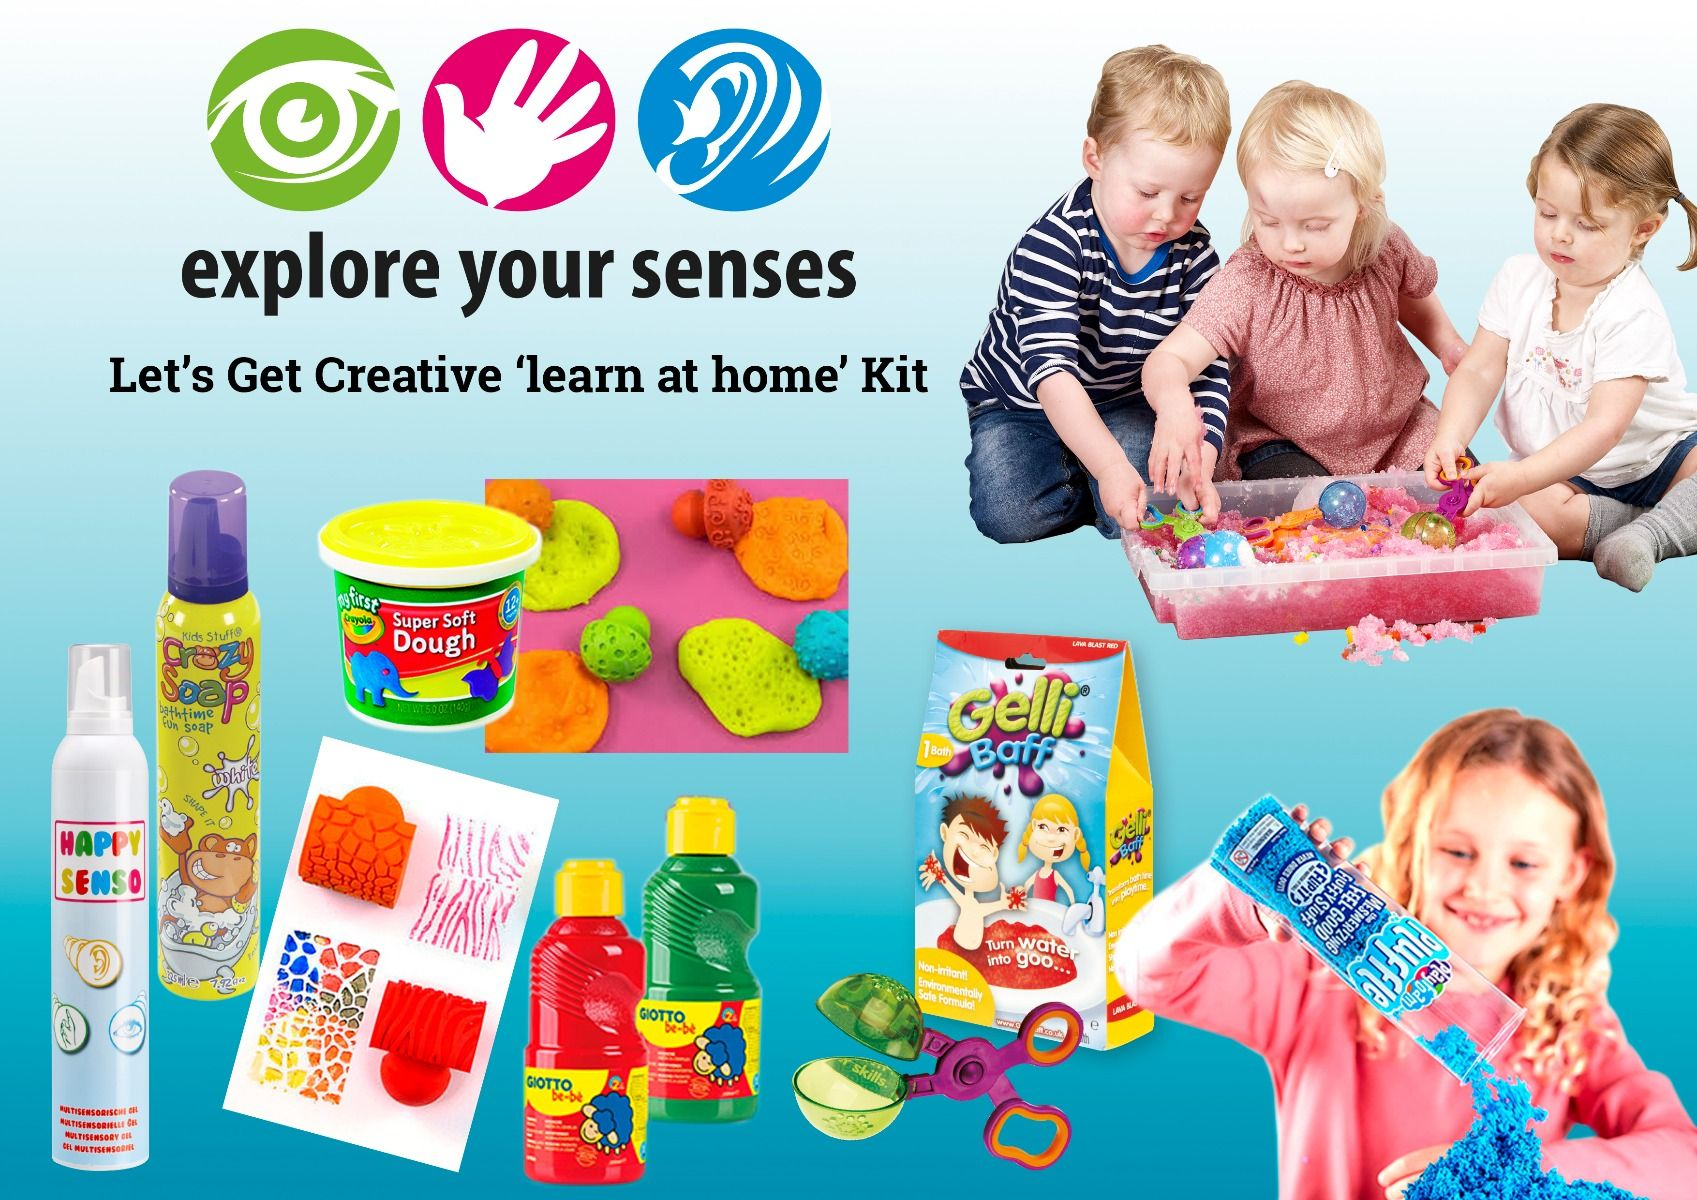 Let's Get Creative ' LEARN AT HOME' Kit